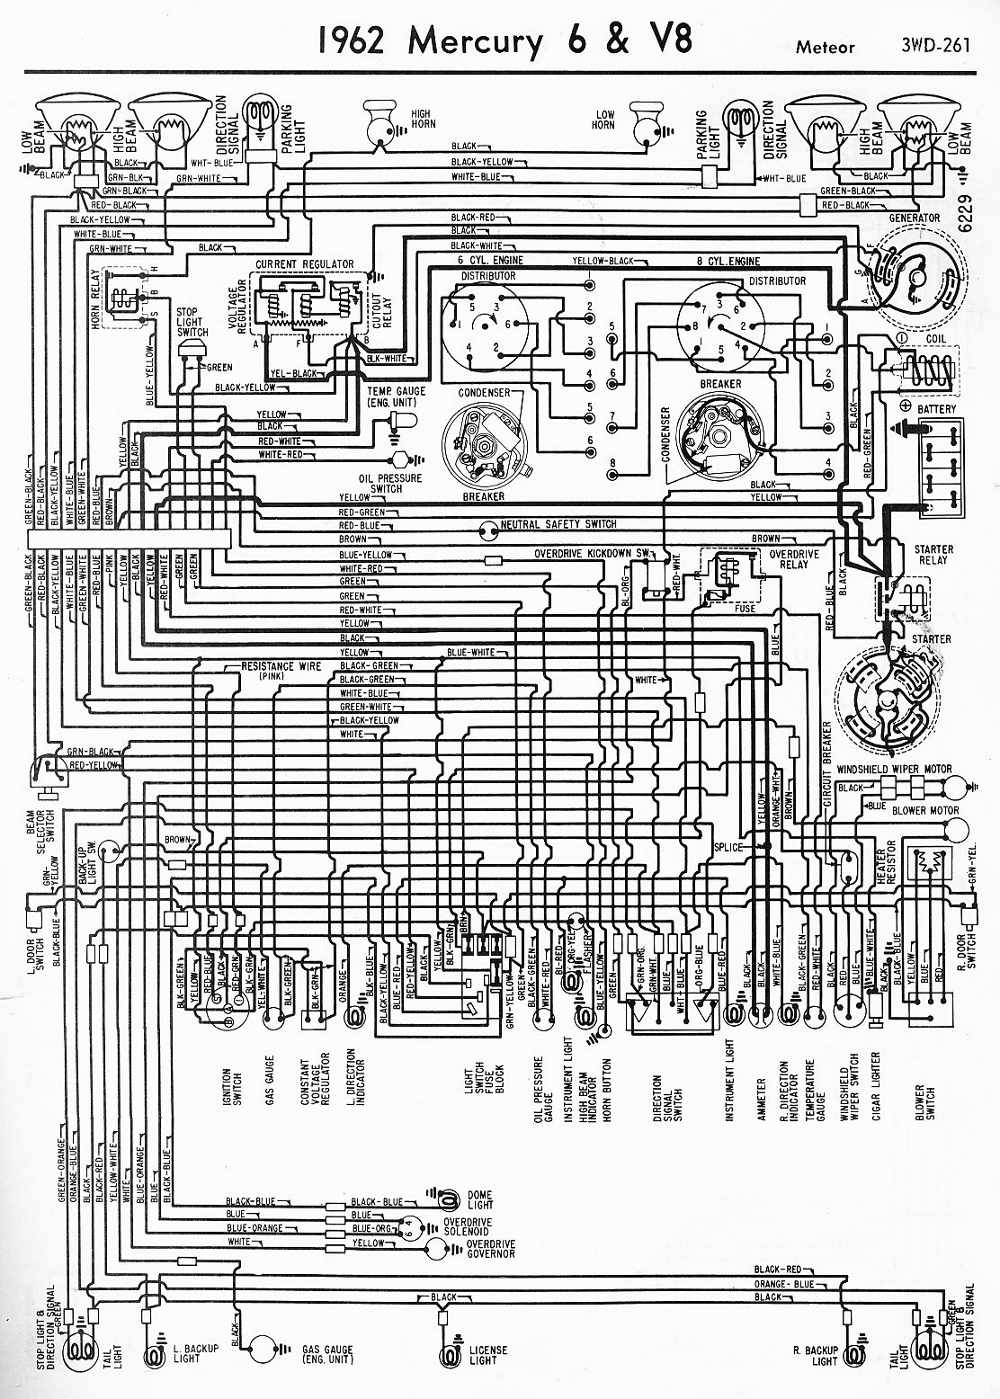 Wiring Diagrams Of Mercury And V Meteor on Wiring Diagrams 1966 Ford Falcon Ranchero